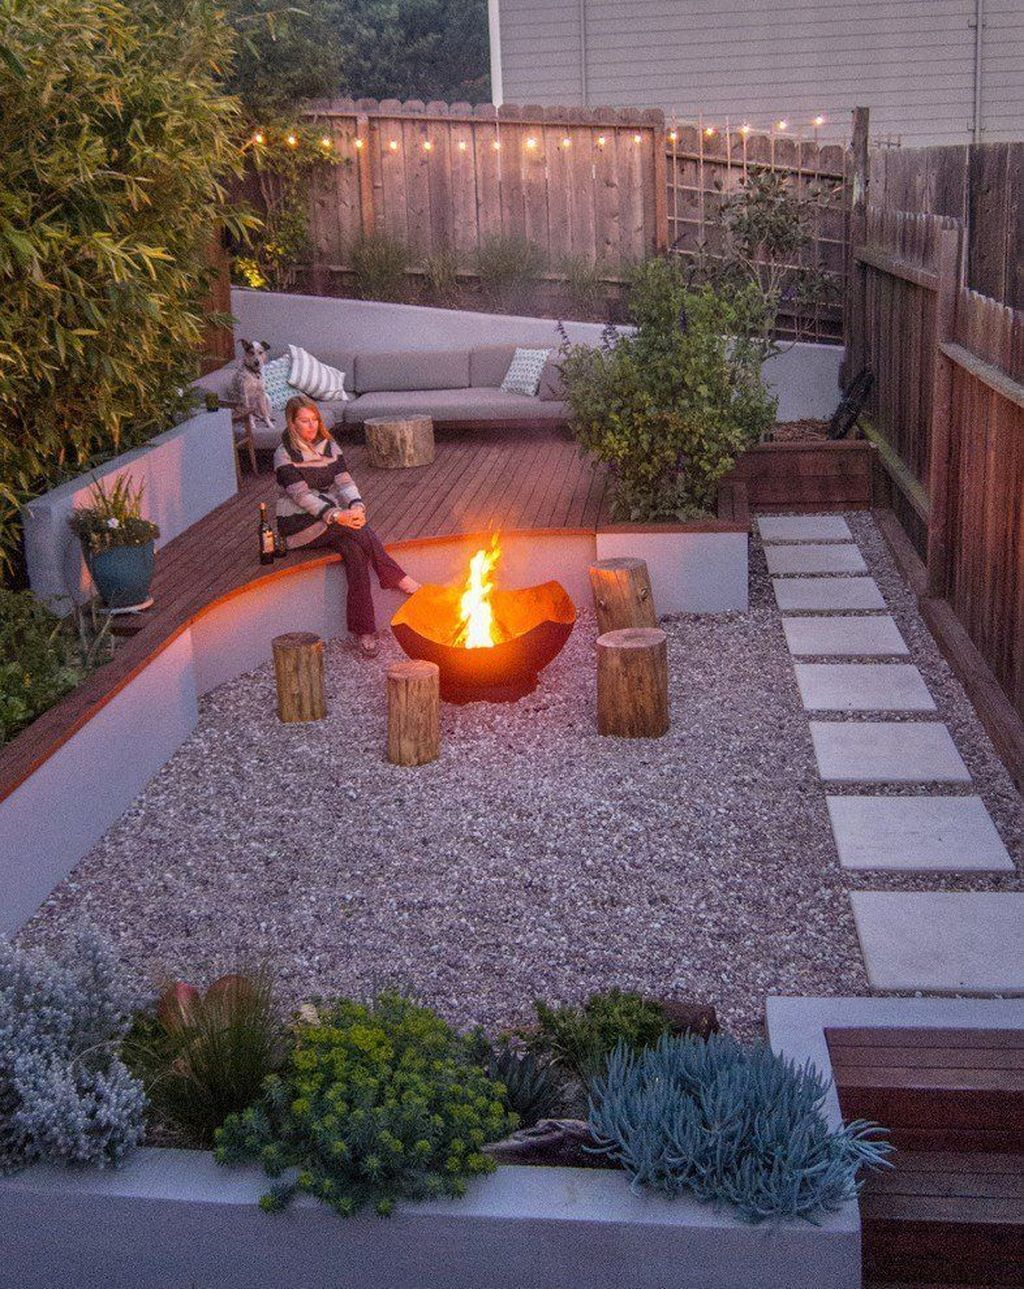 Check Out This Backyard Landscaping Idea And Get More Great Tips Modern Landscaping Small Backyard Landscaping Garden Landscape Design